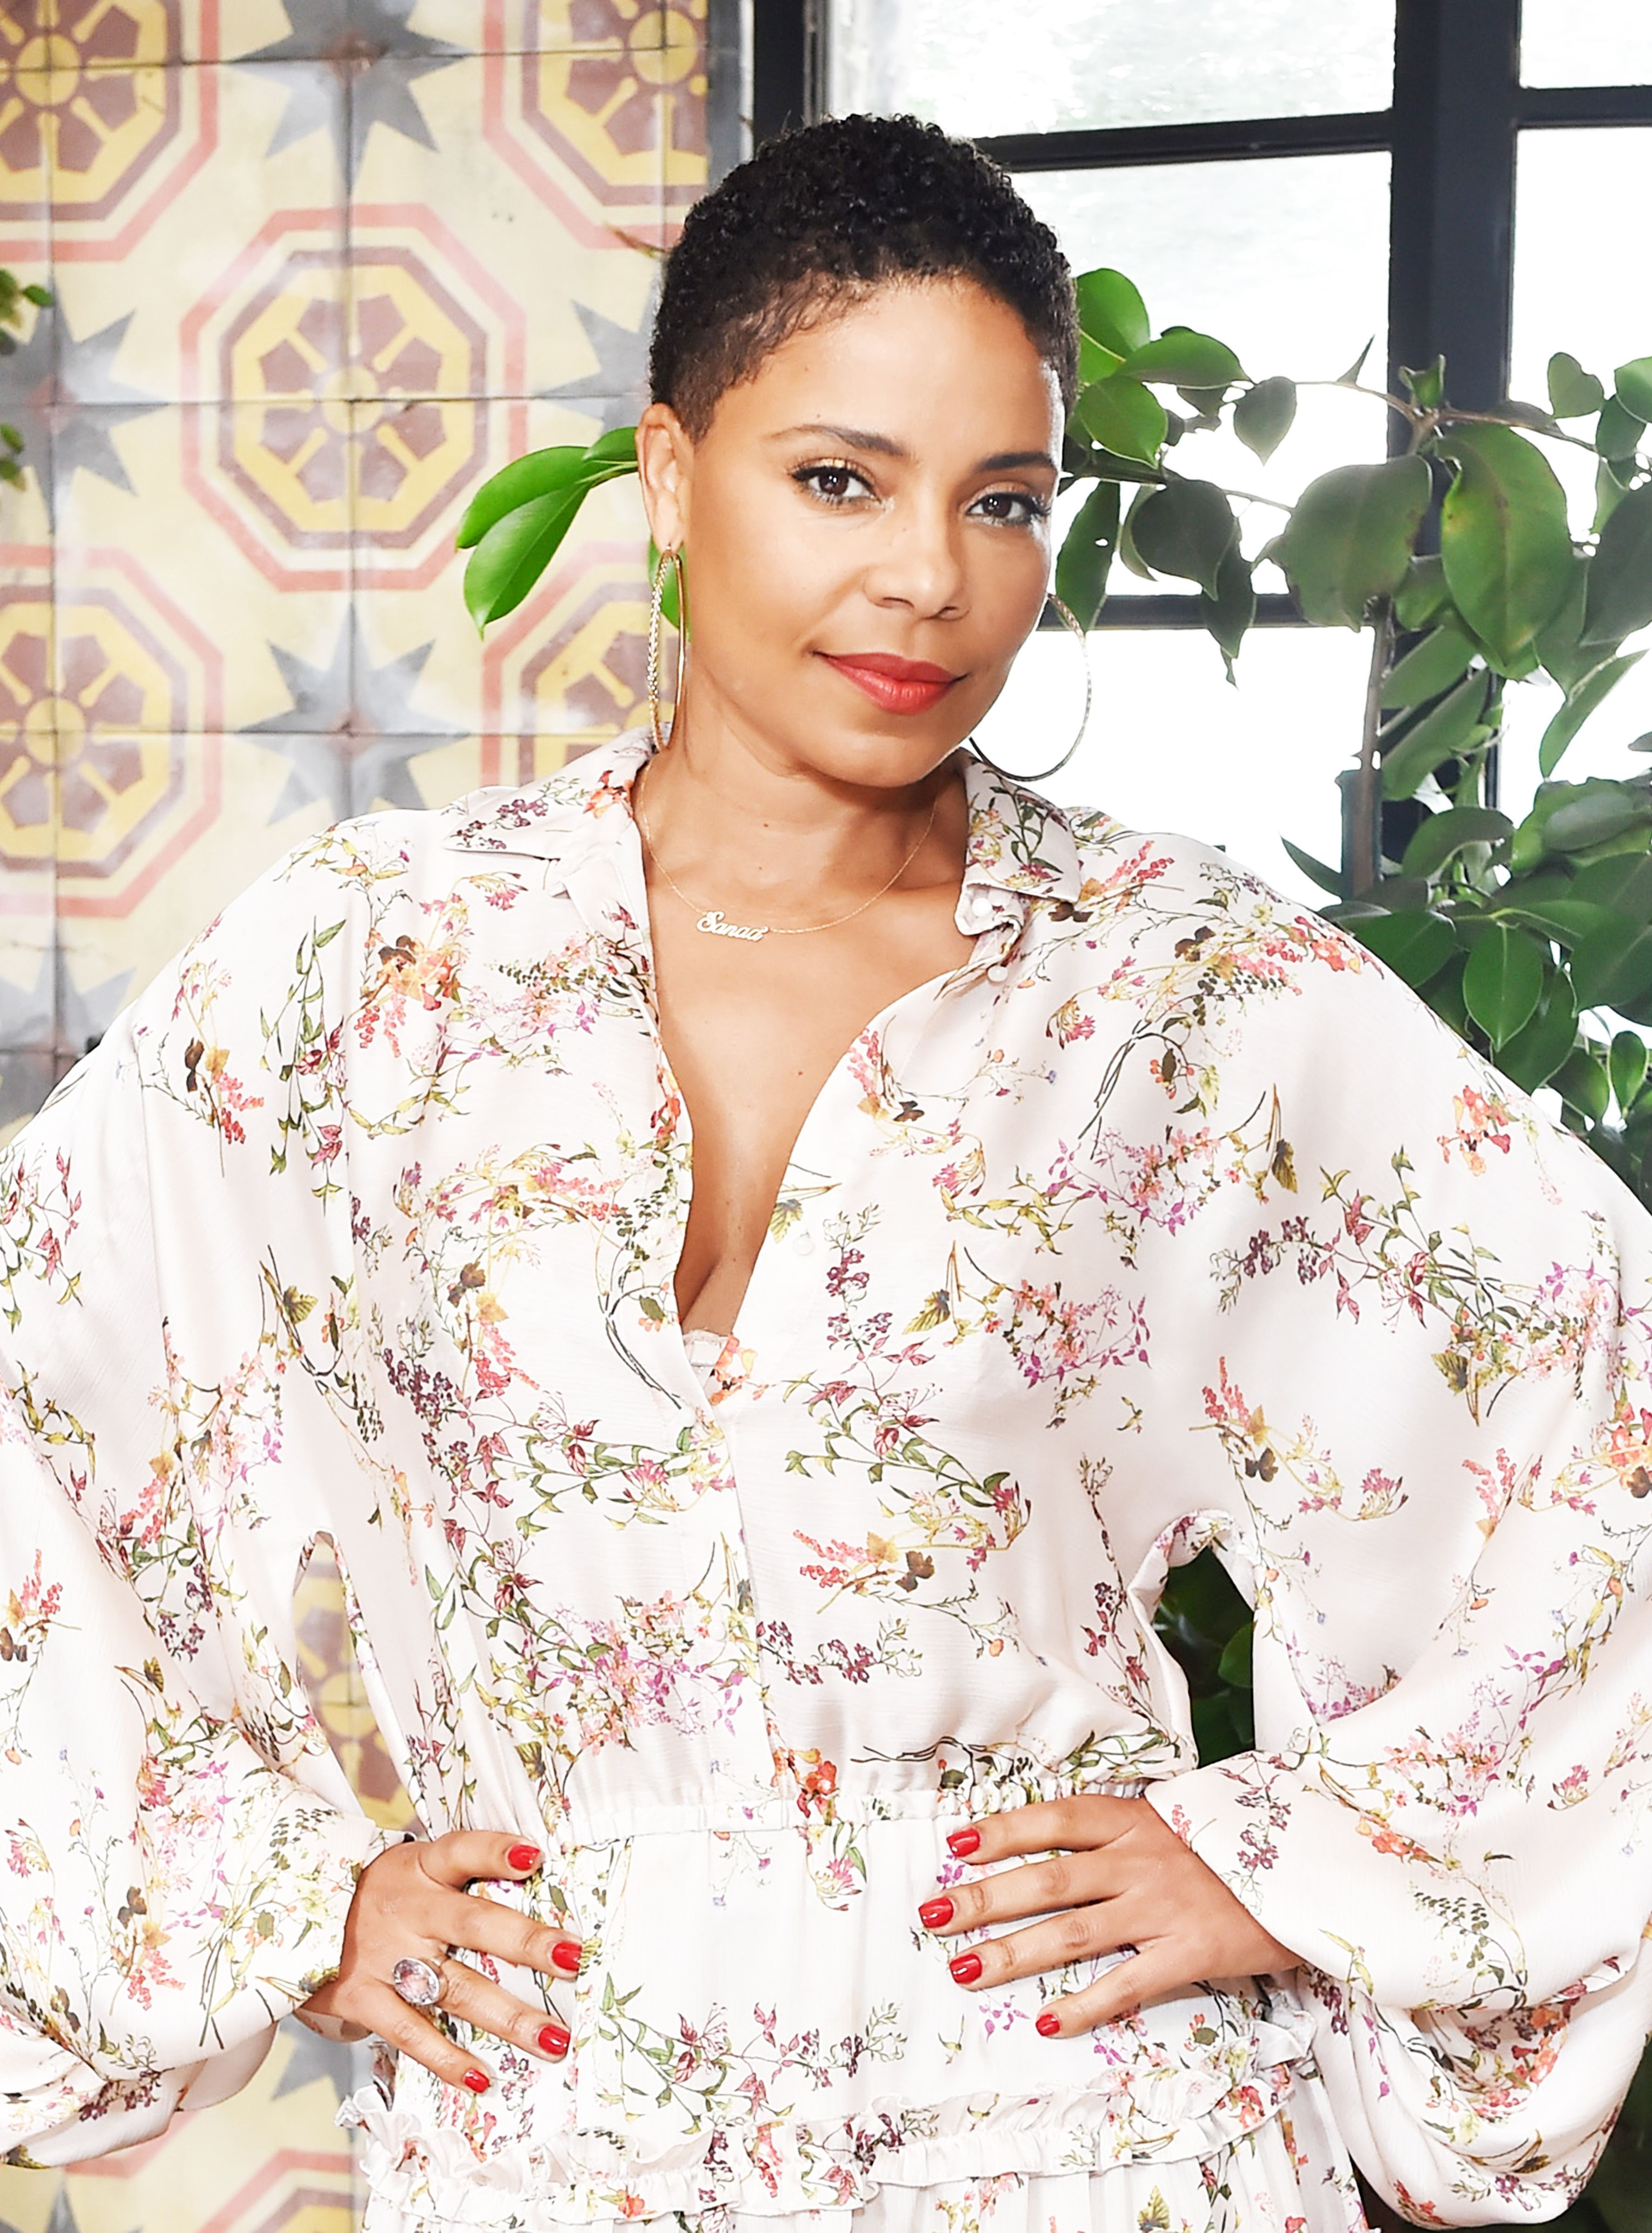 The 1 Beyonce Biter Culprit Just Broke Her Silence In 2020 Short Natural Hair Styles Beyonce Sanaa Lathan